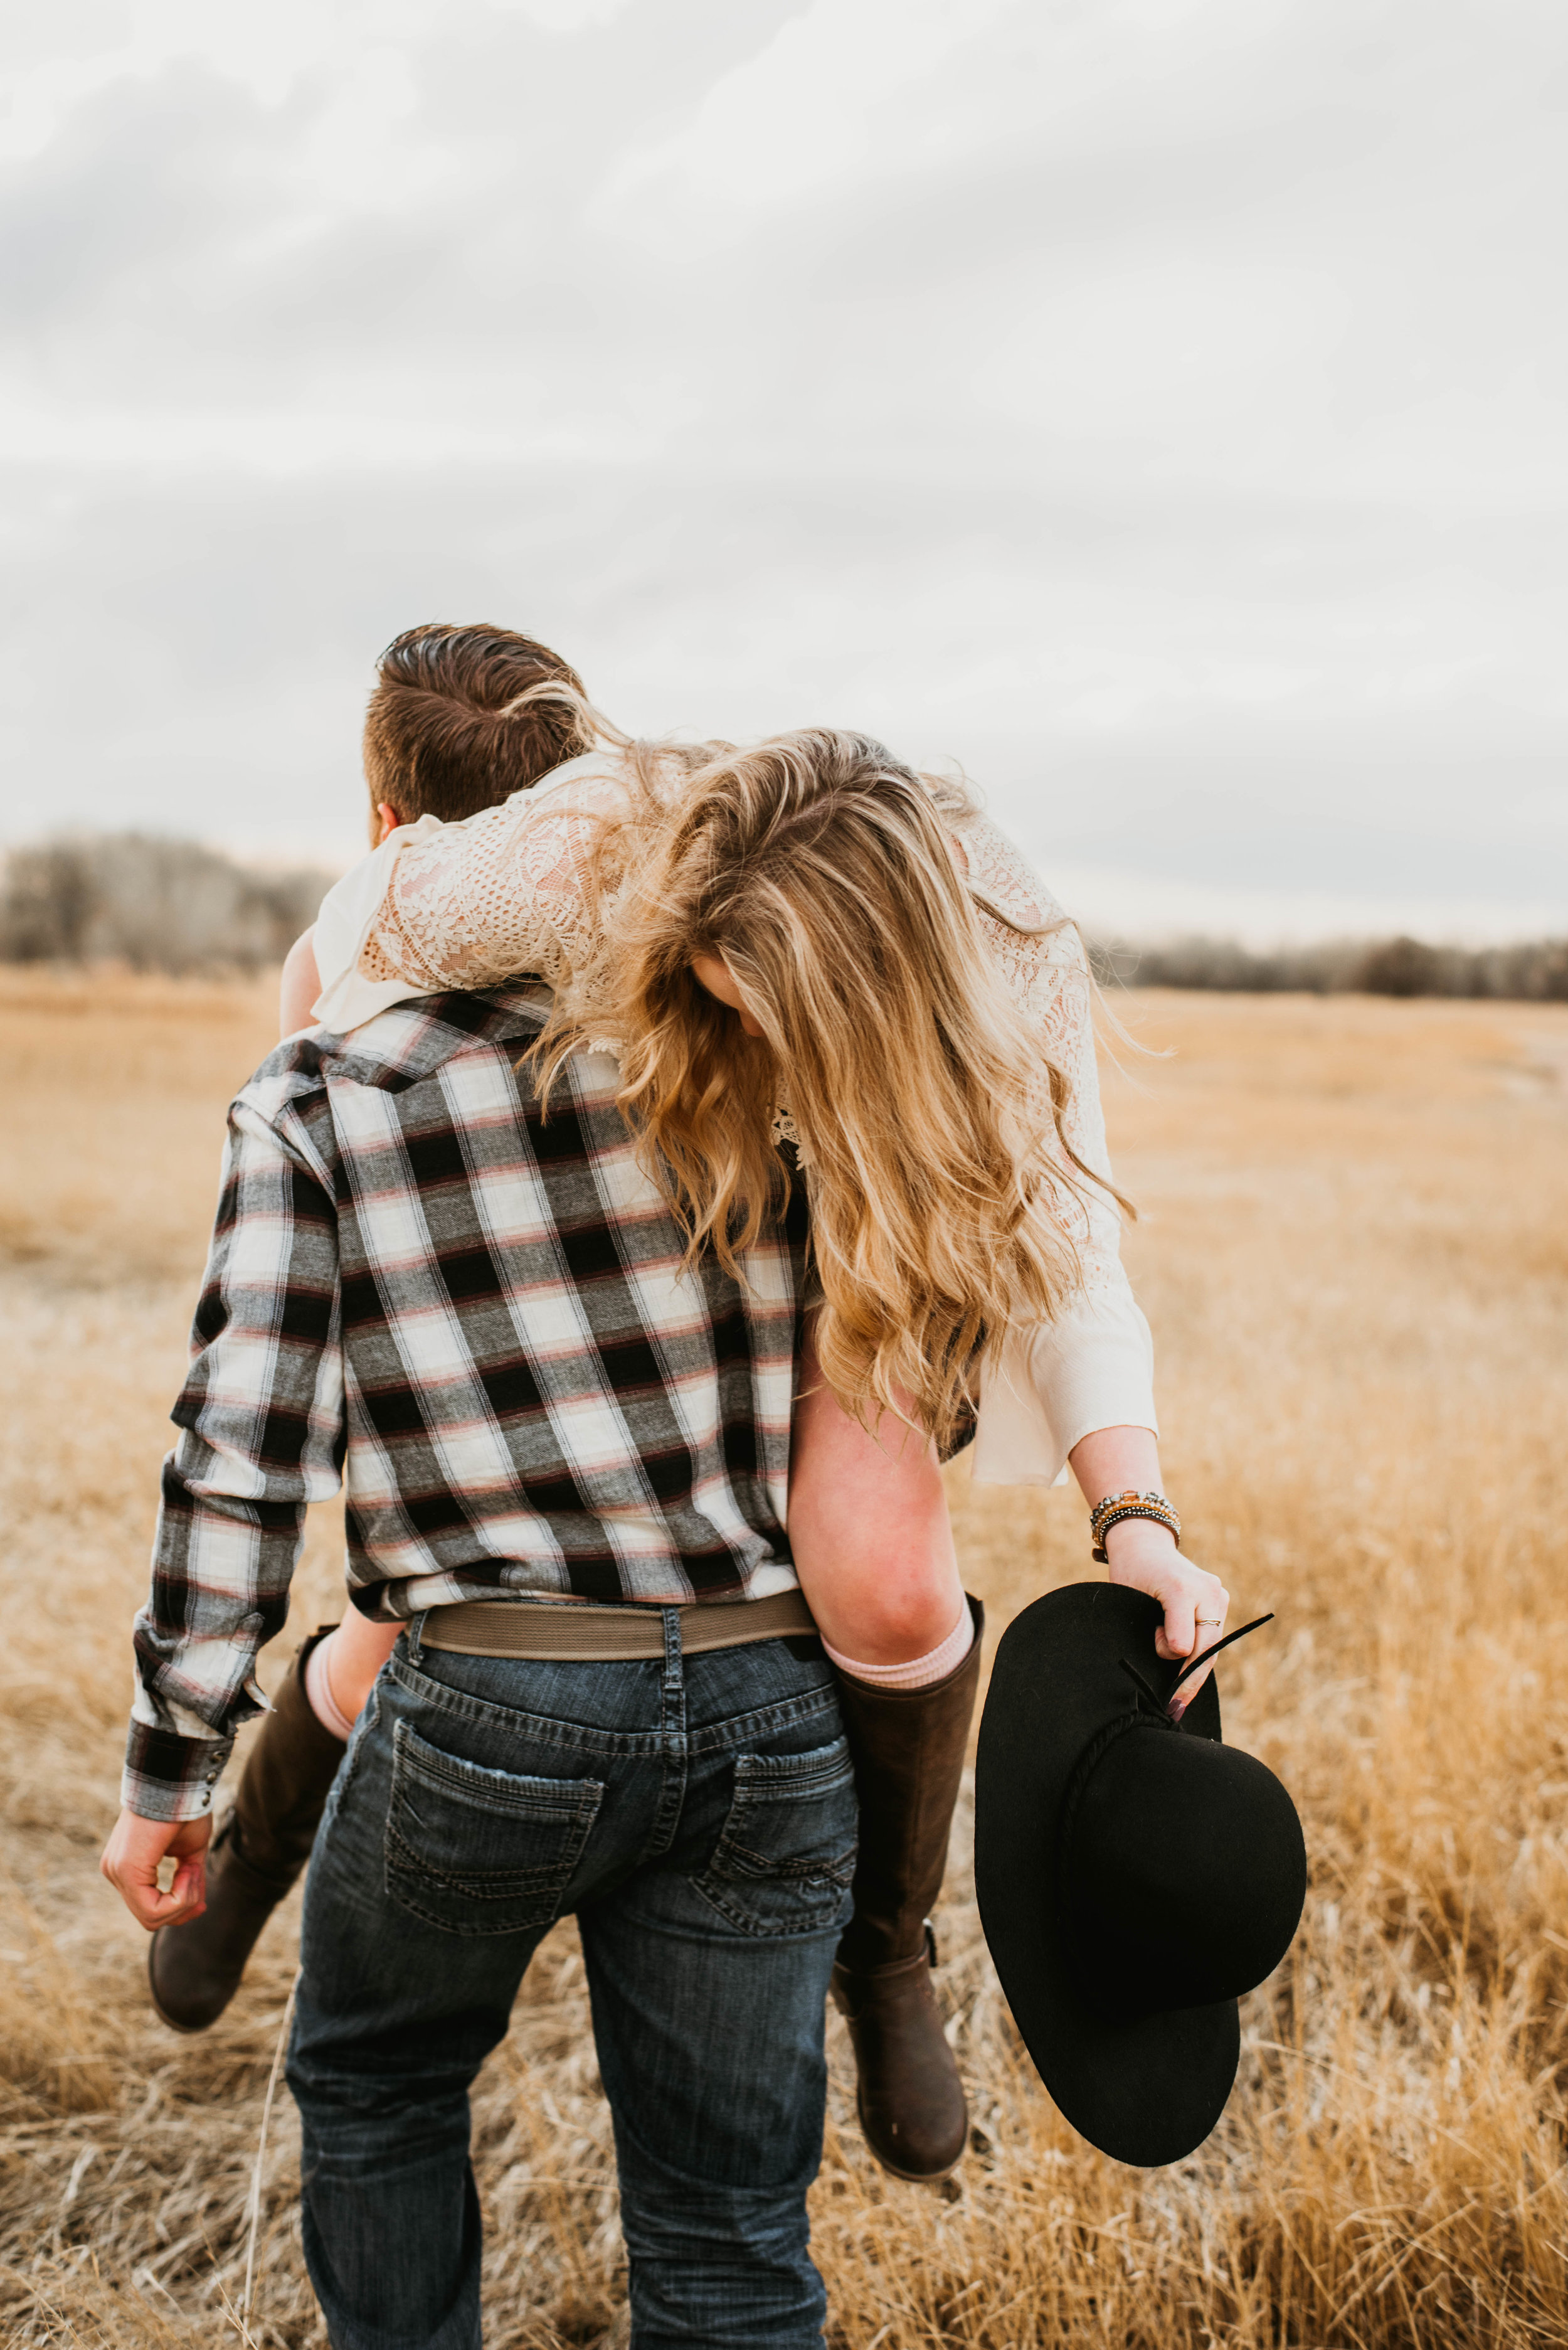 Miss. Miller's Photography | Colorado couples photographer | dirty boots and messy hair presets | Colorado wedding photographer | Couple photo shoot ideas | couples photography ideas | candid couples photo ideas | couples outfit idea for photos